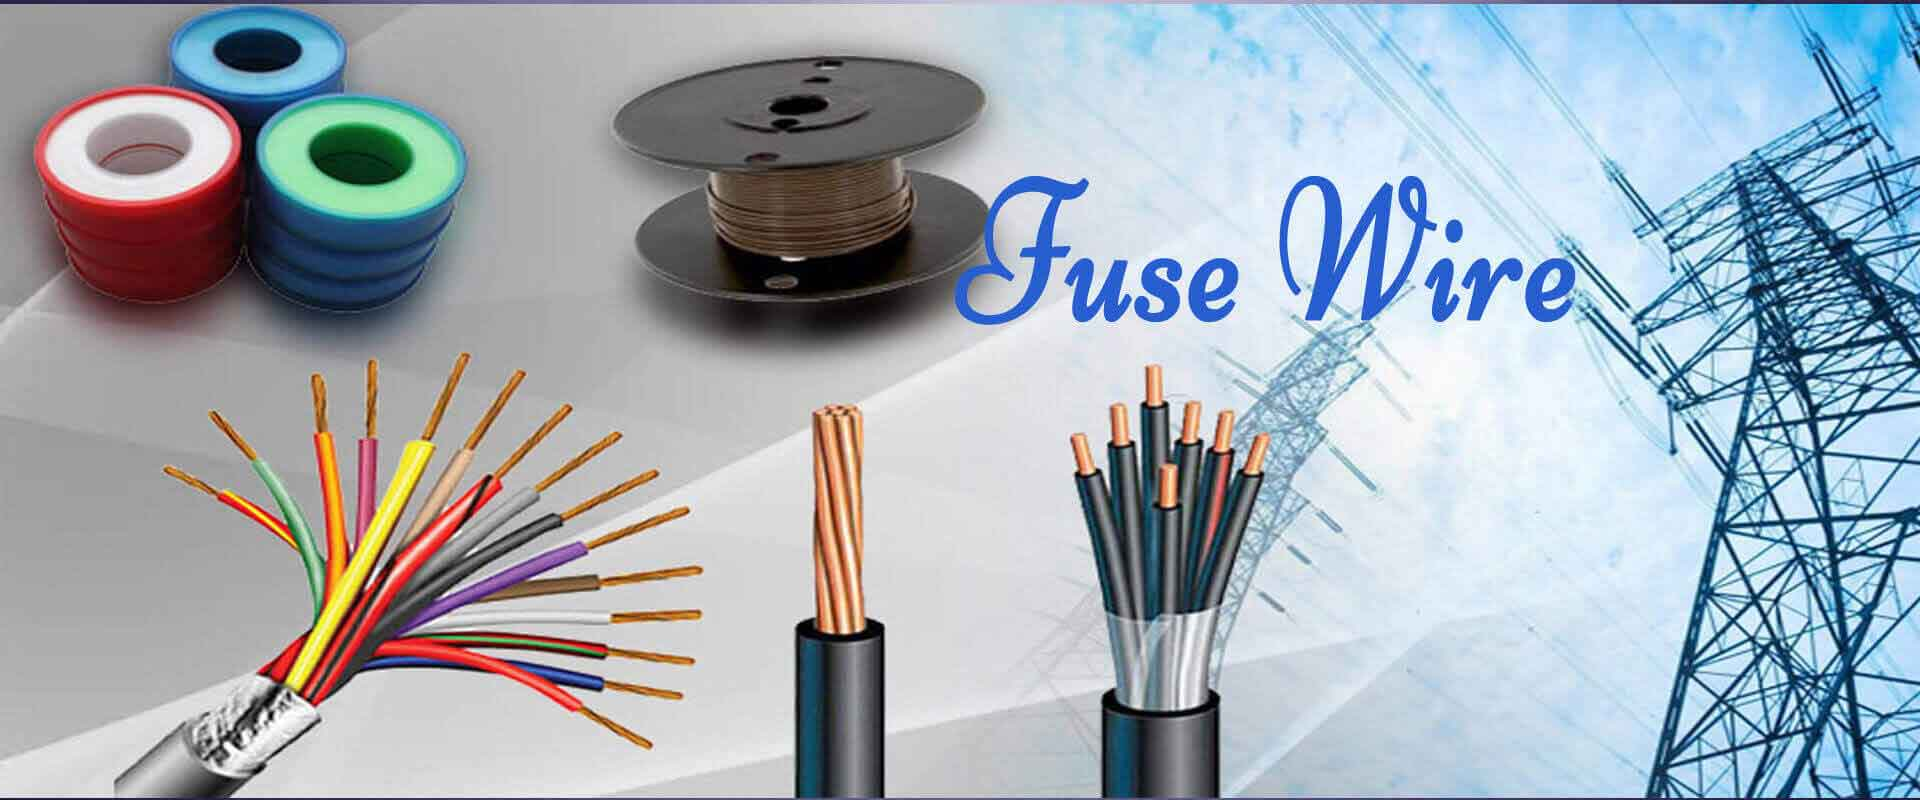 Silver Plated Copper Wire For Fuse In Utah